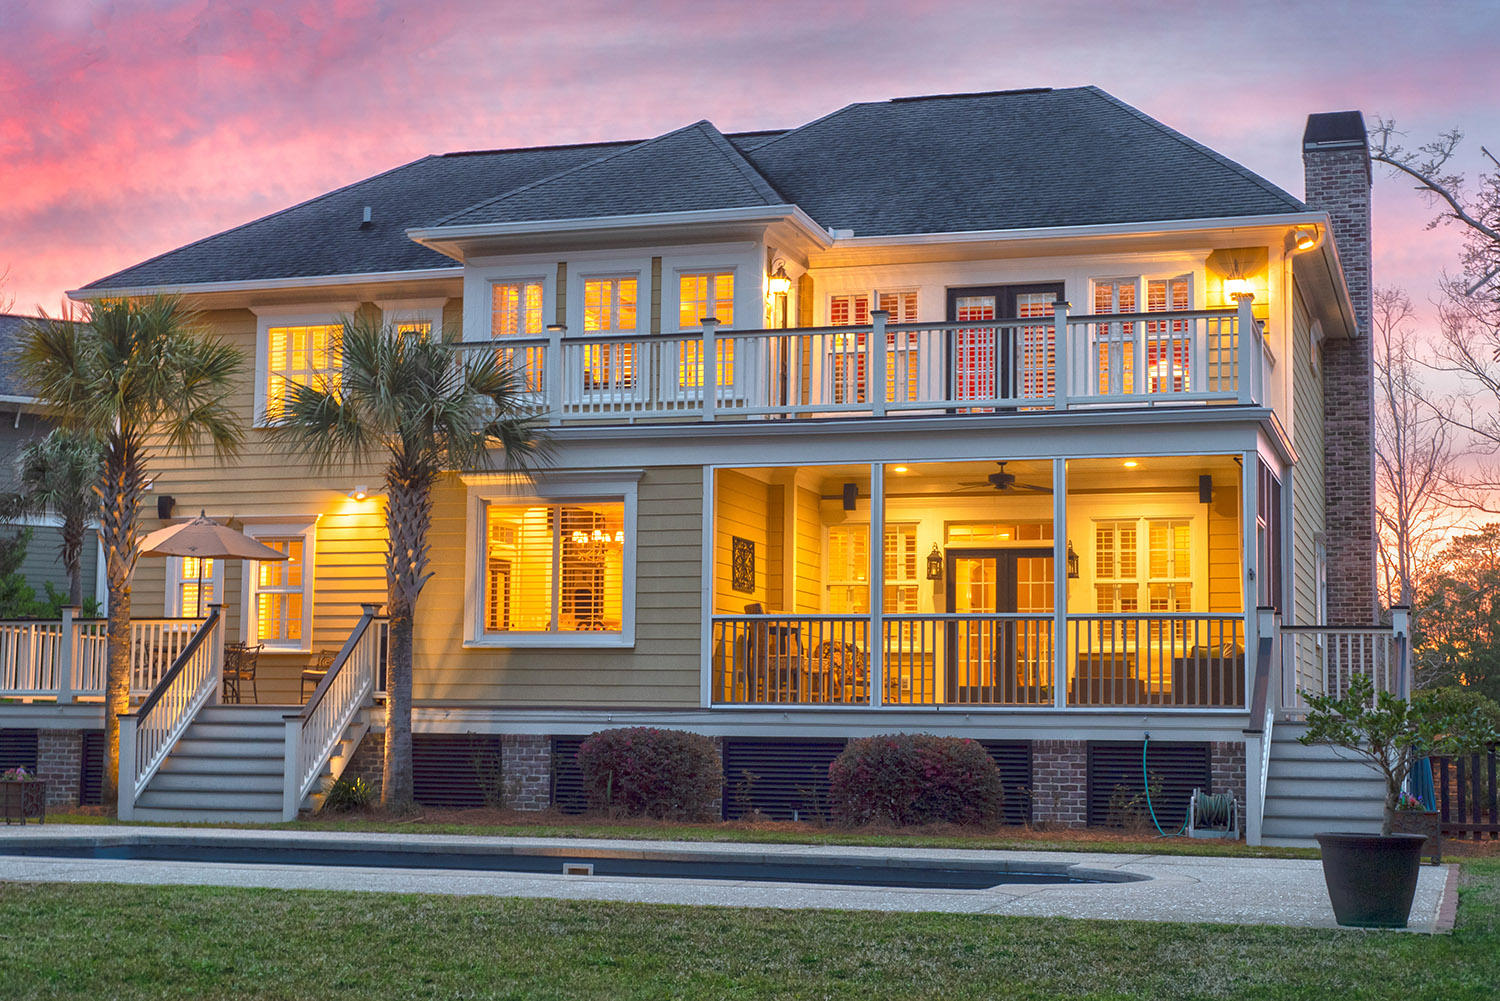 Dunes West Homes For Sale - 1305 King Bird, Mount Pleasant, SC - 12